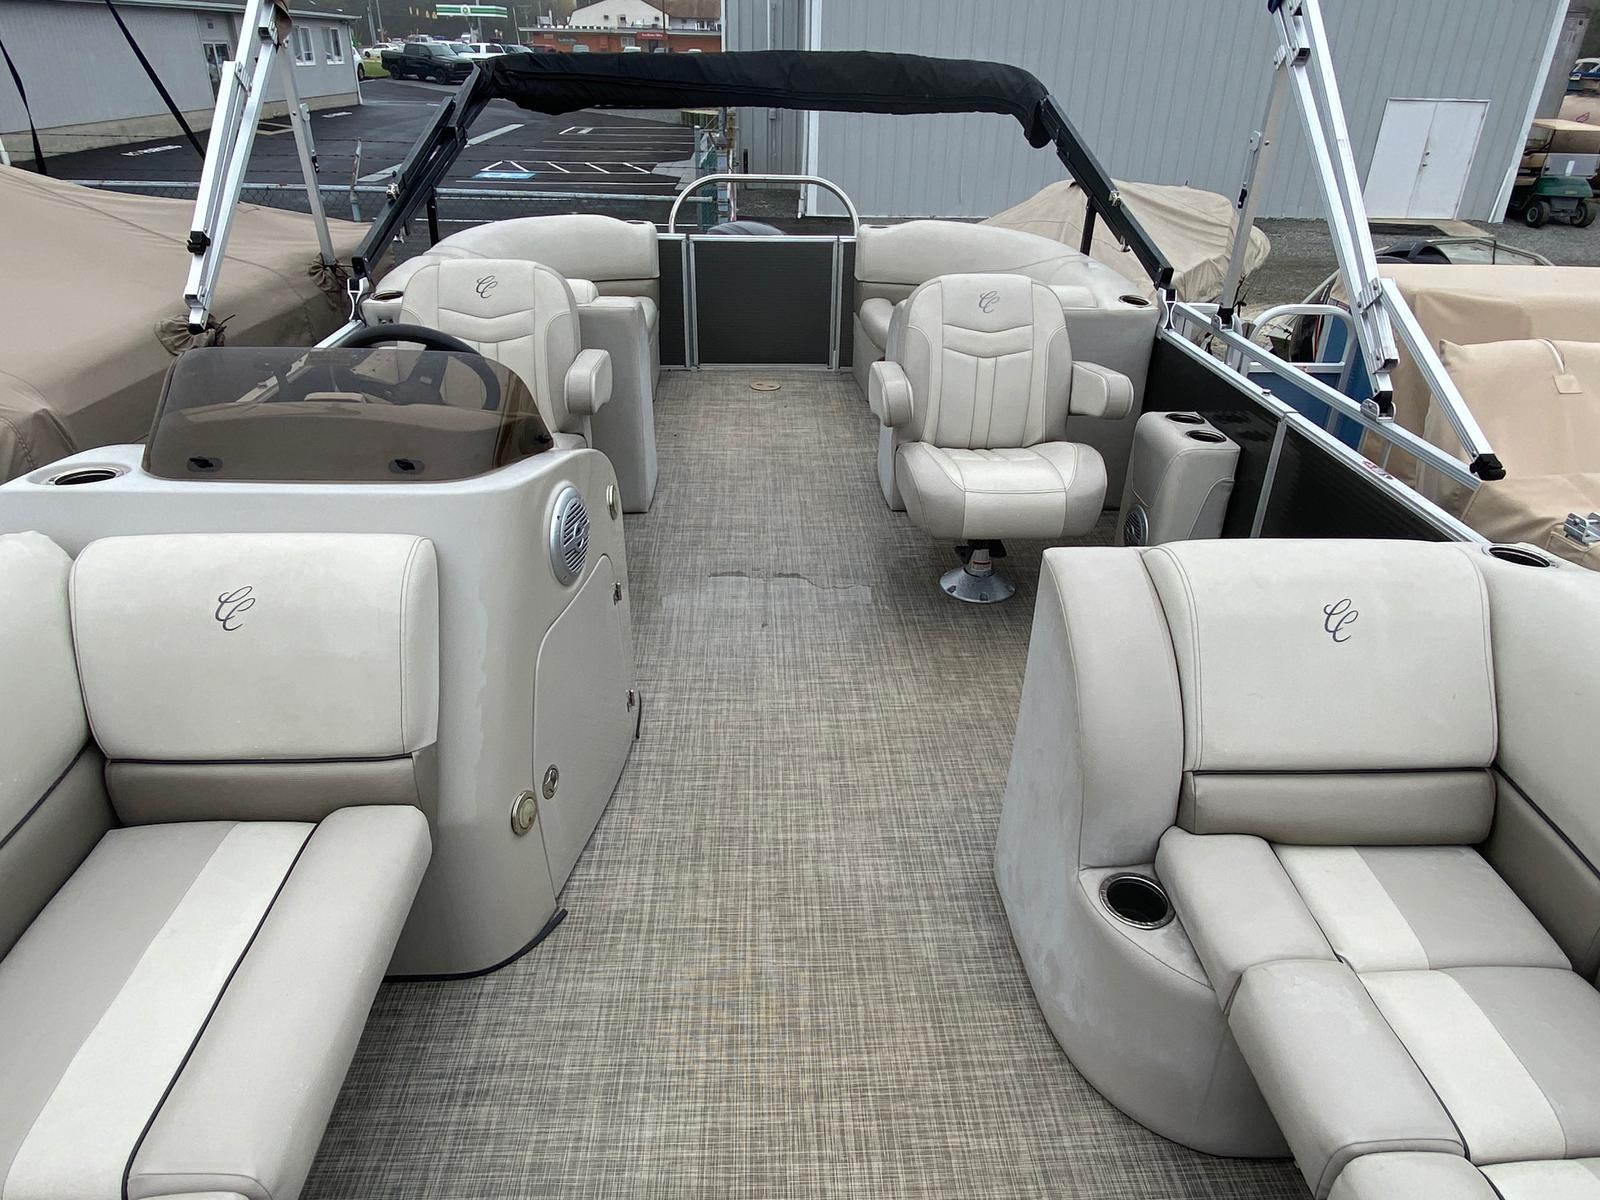 2017 Cypress Cay boat for sale, model of the boat is Seabreeze 232 & Image # 8 of 11